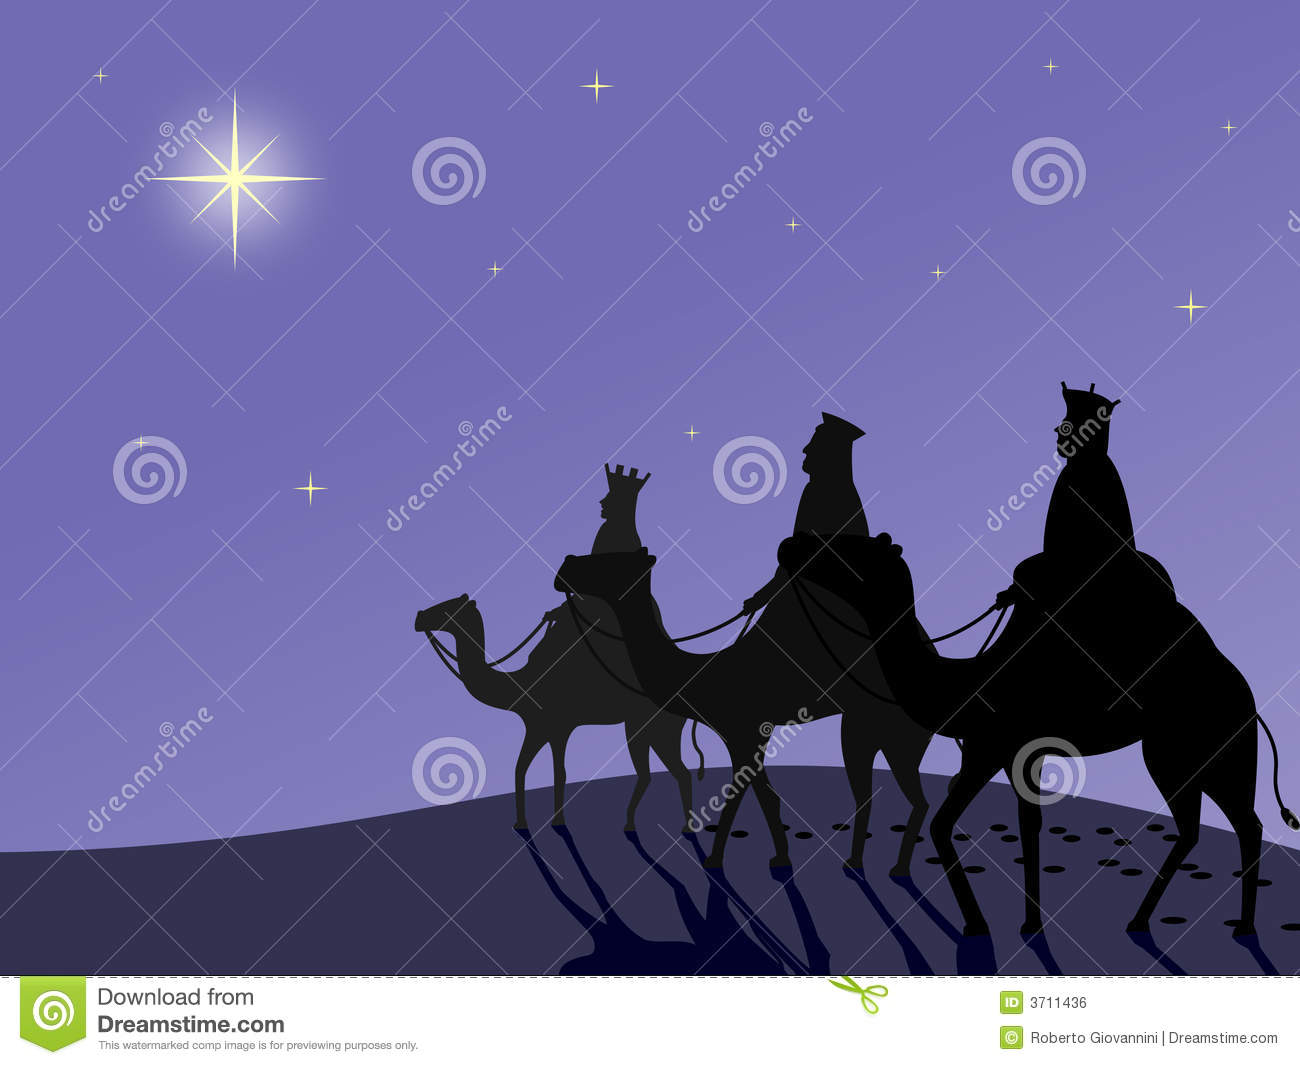 Three Wise Men Silhouette Wisemen in the desert